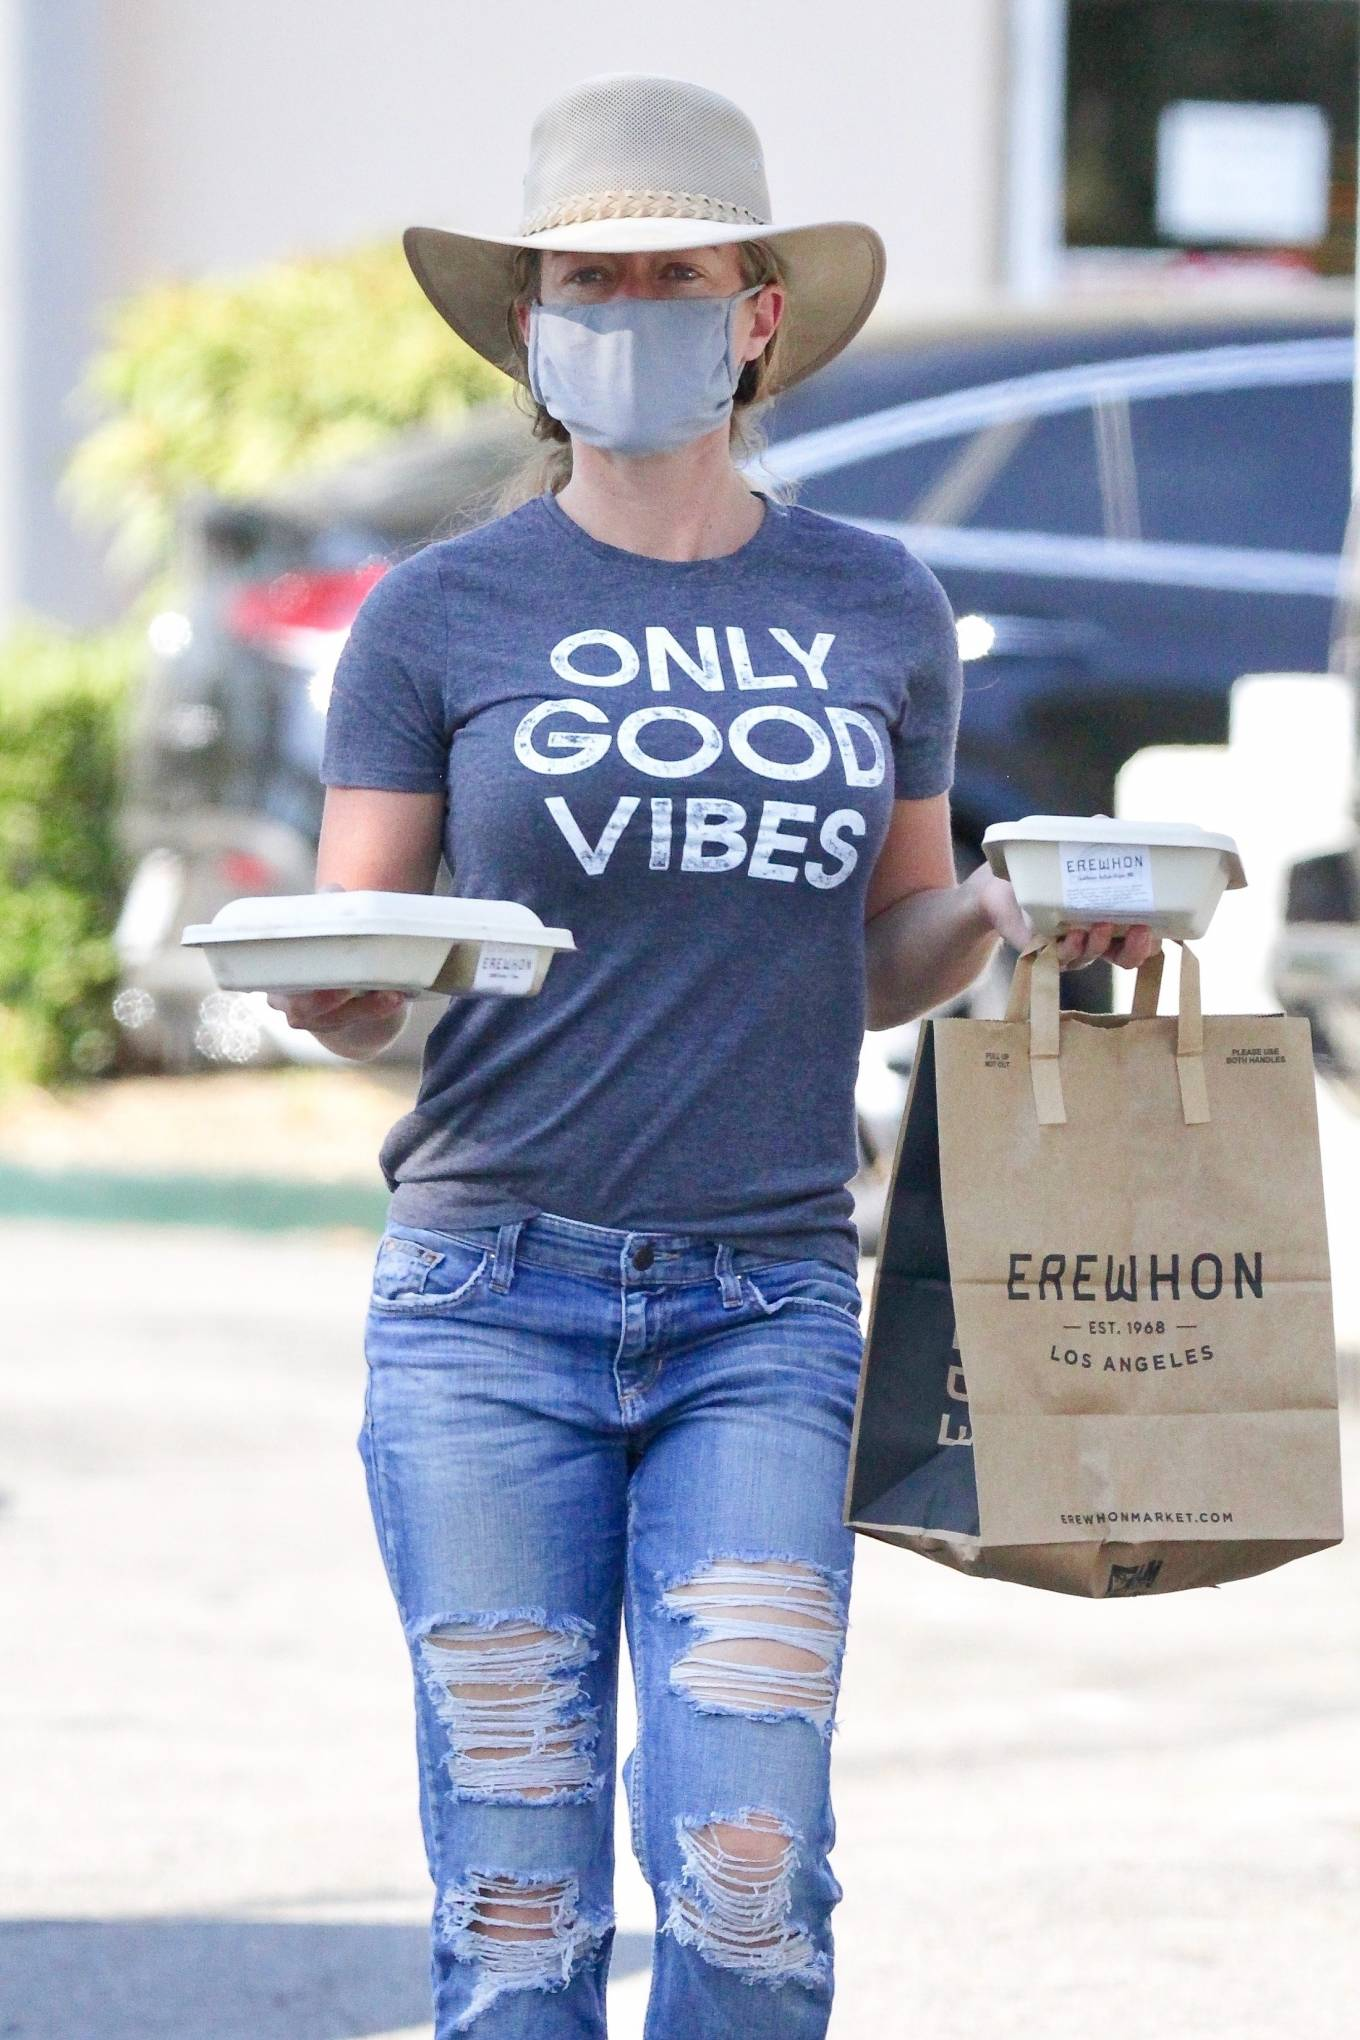 Kendra Wilkinson 2020 : Kendra Wilkinson – Wears an Only Good Vibes T-Shirt at Erewhon Market in Calabasas-06